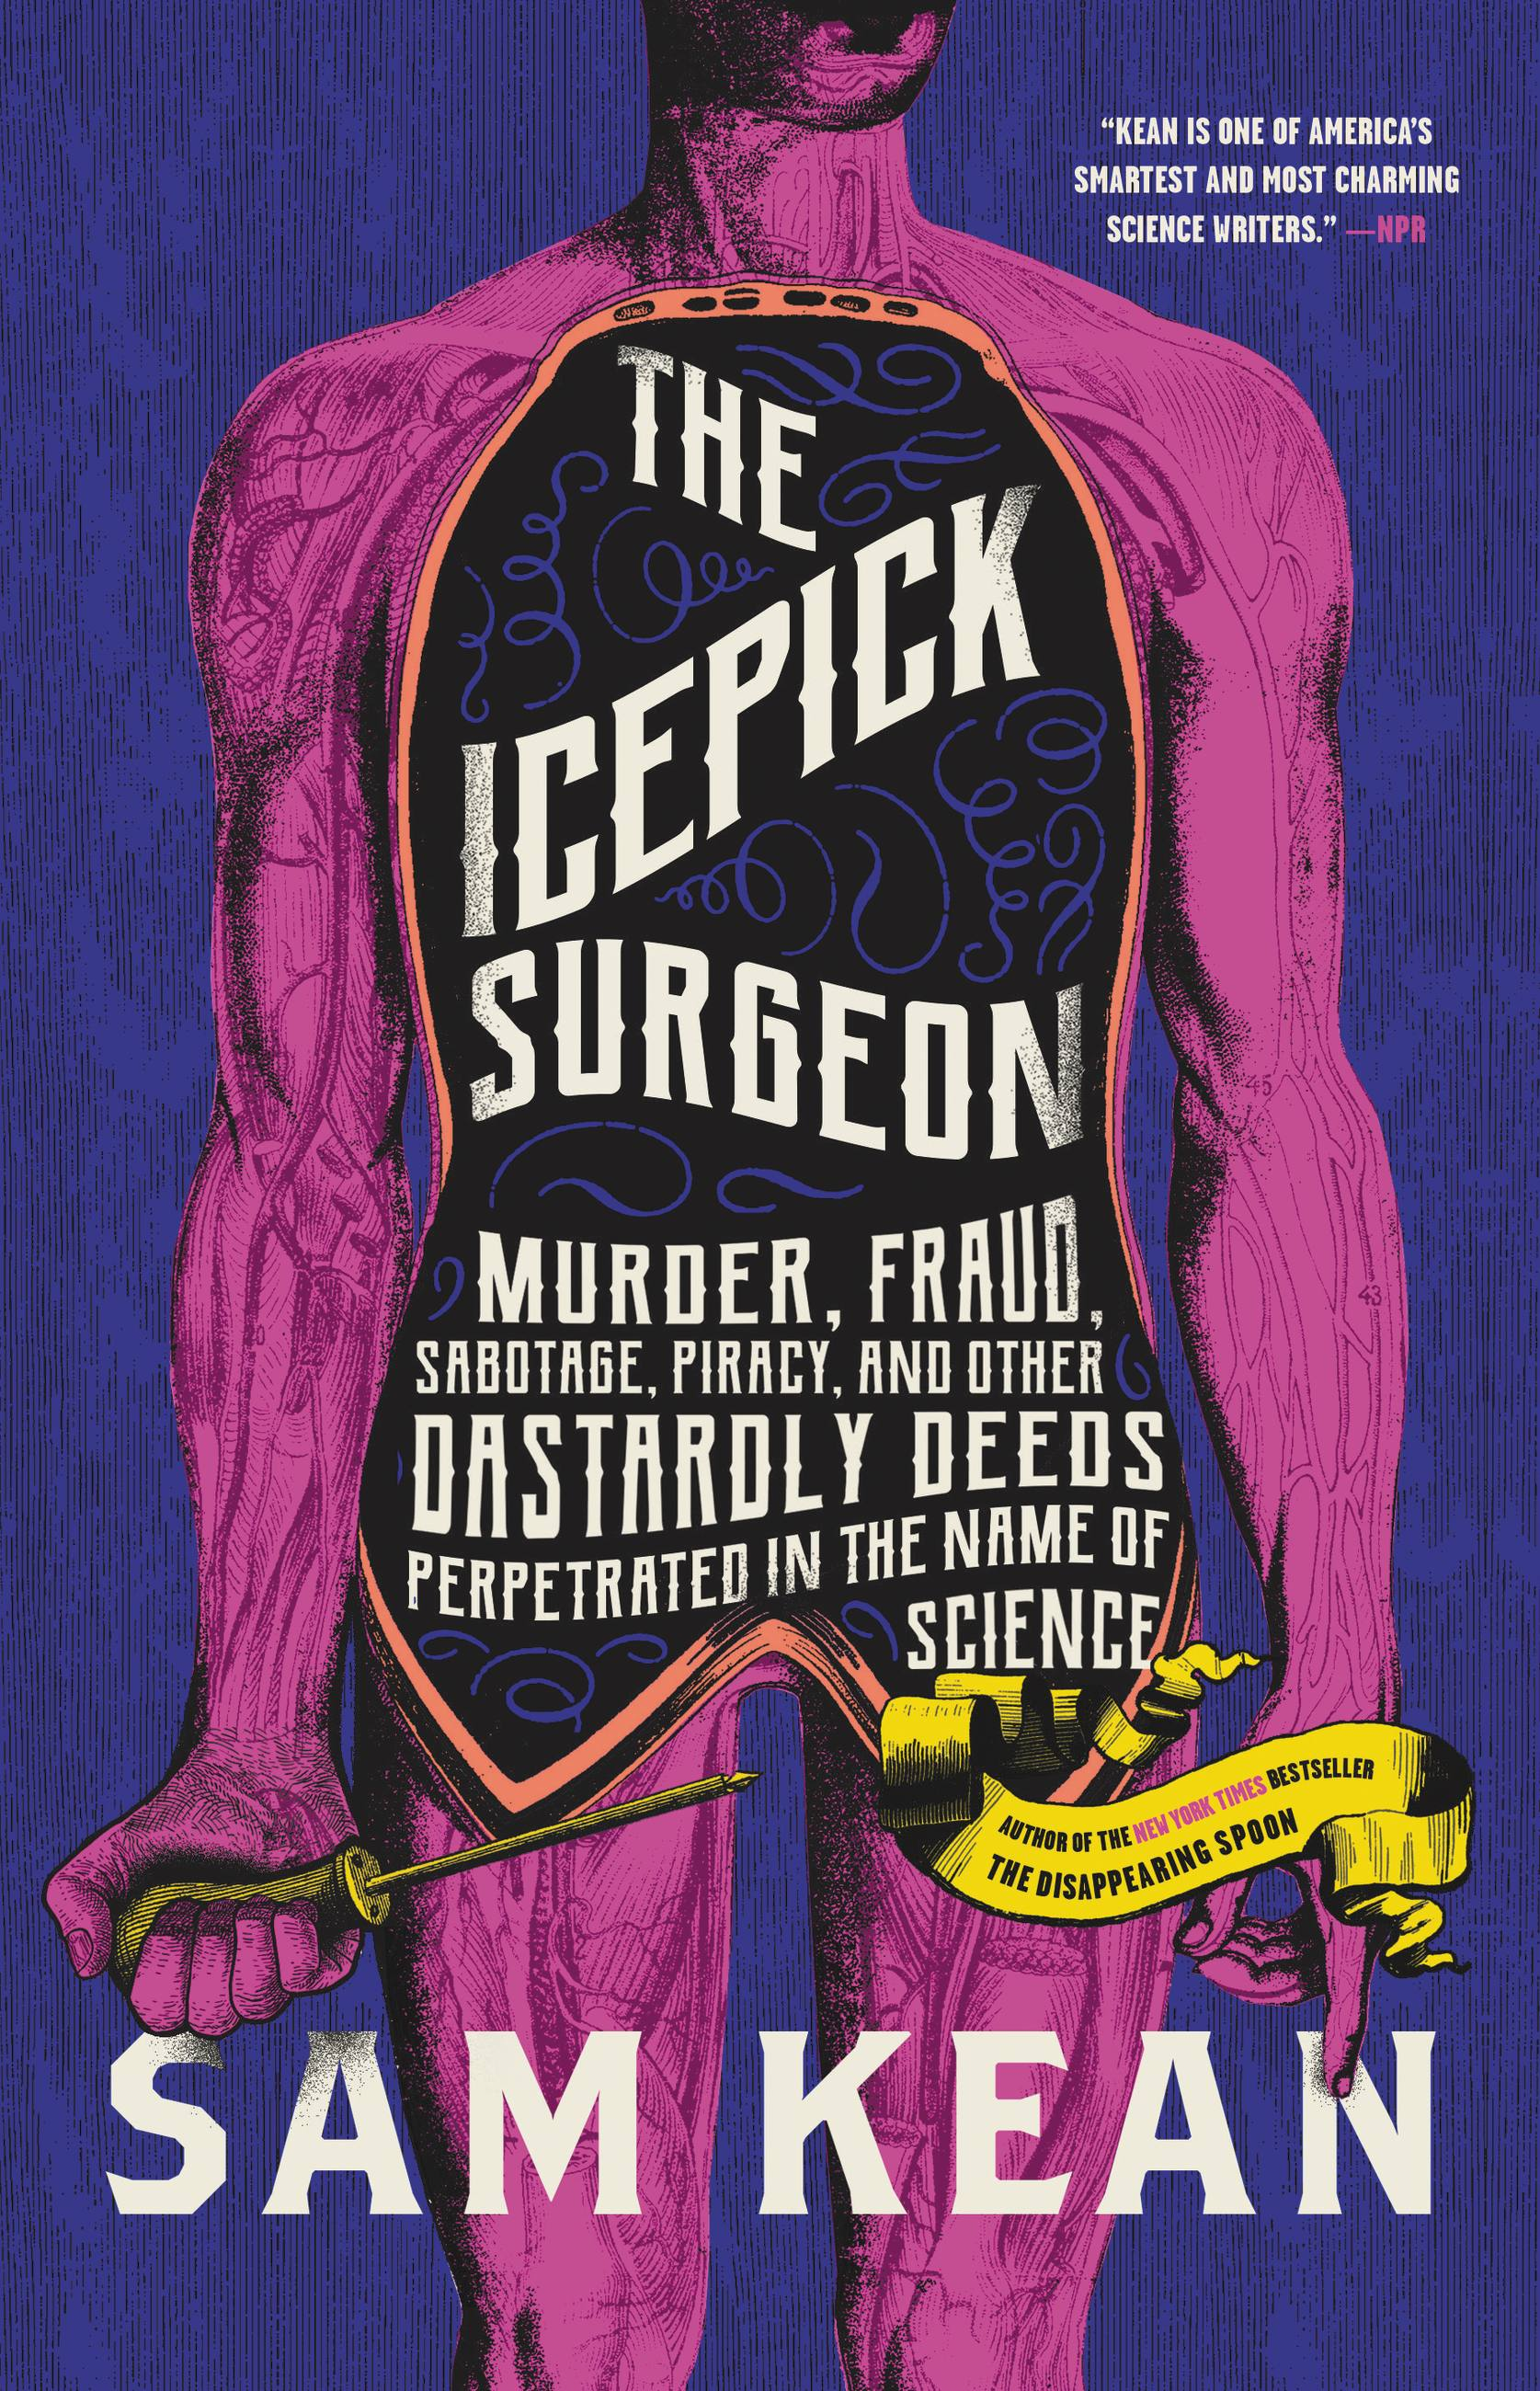 The Icepick Surgeon Murder, Fraud, Sabotage, Piracy, and Other Dastardly Deeds Perpetrated in the Name of Science